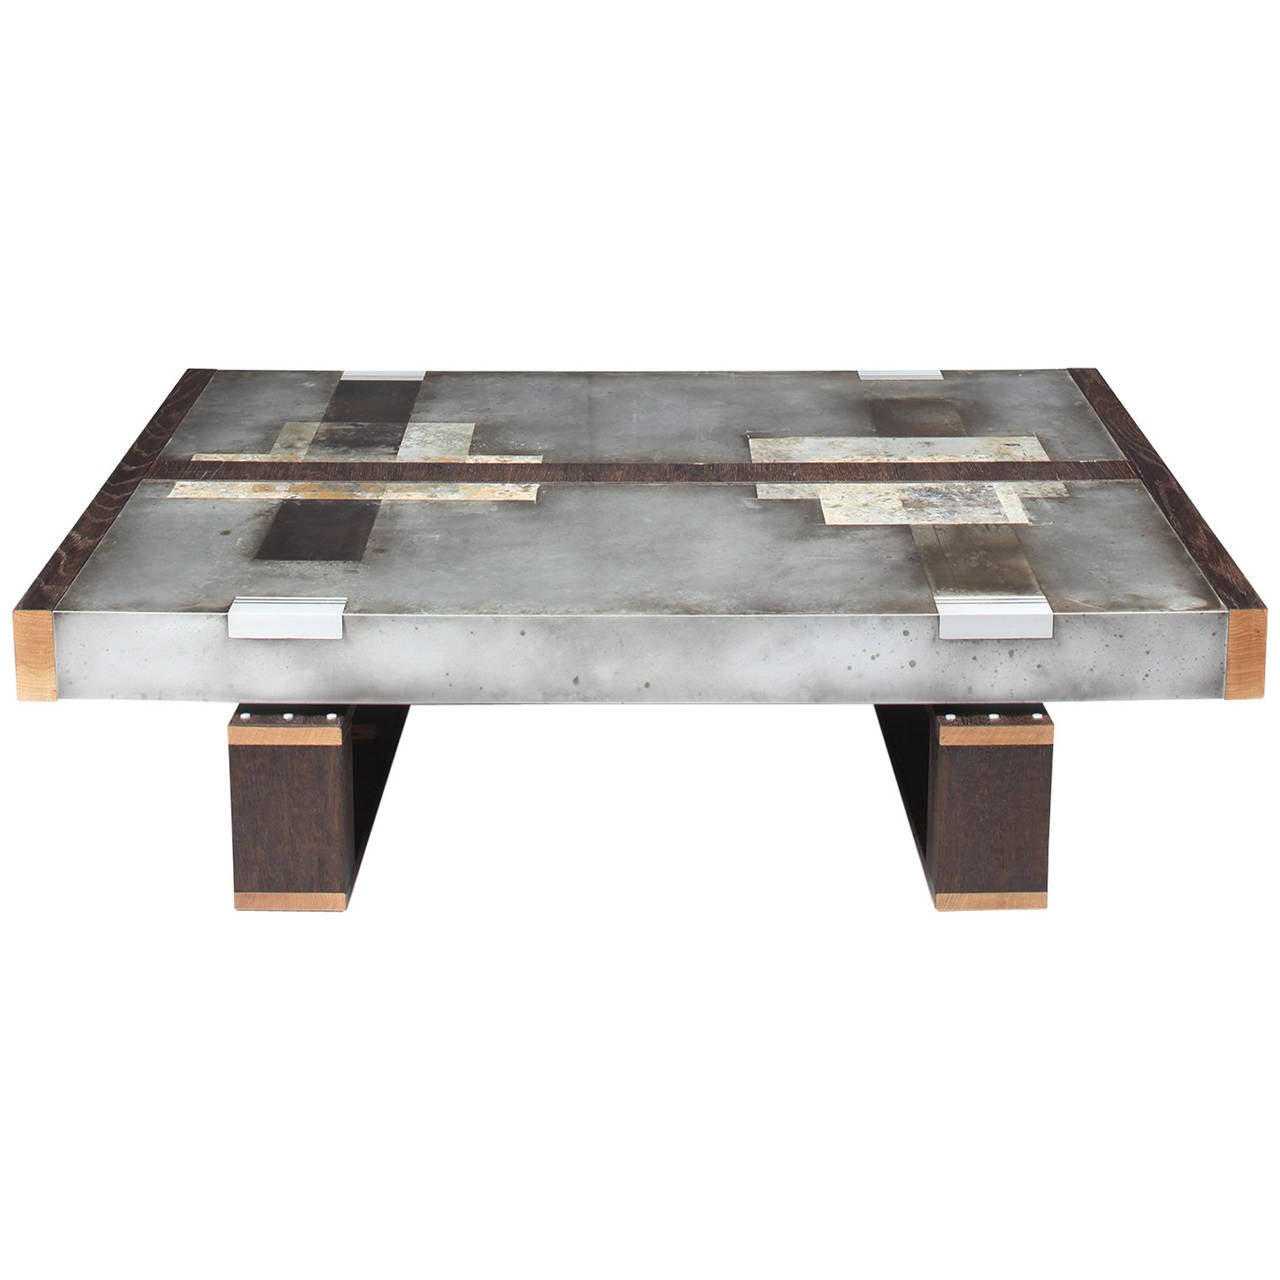 Divided Lands Coffee Table In Etched Zinc And Charred Oak By Studio Roeper For Sale At 1stdibs